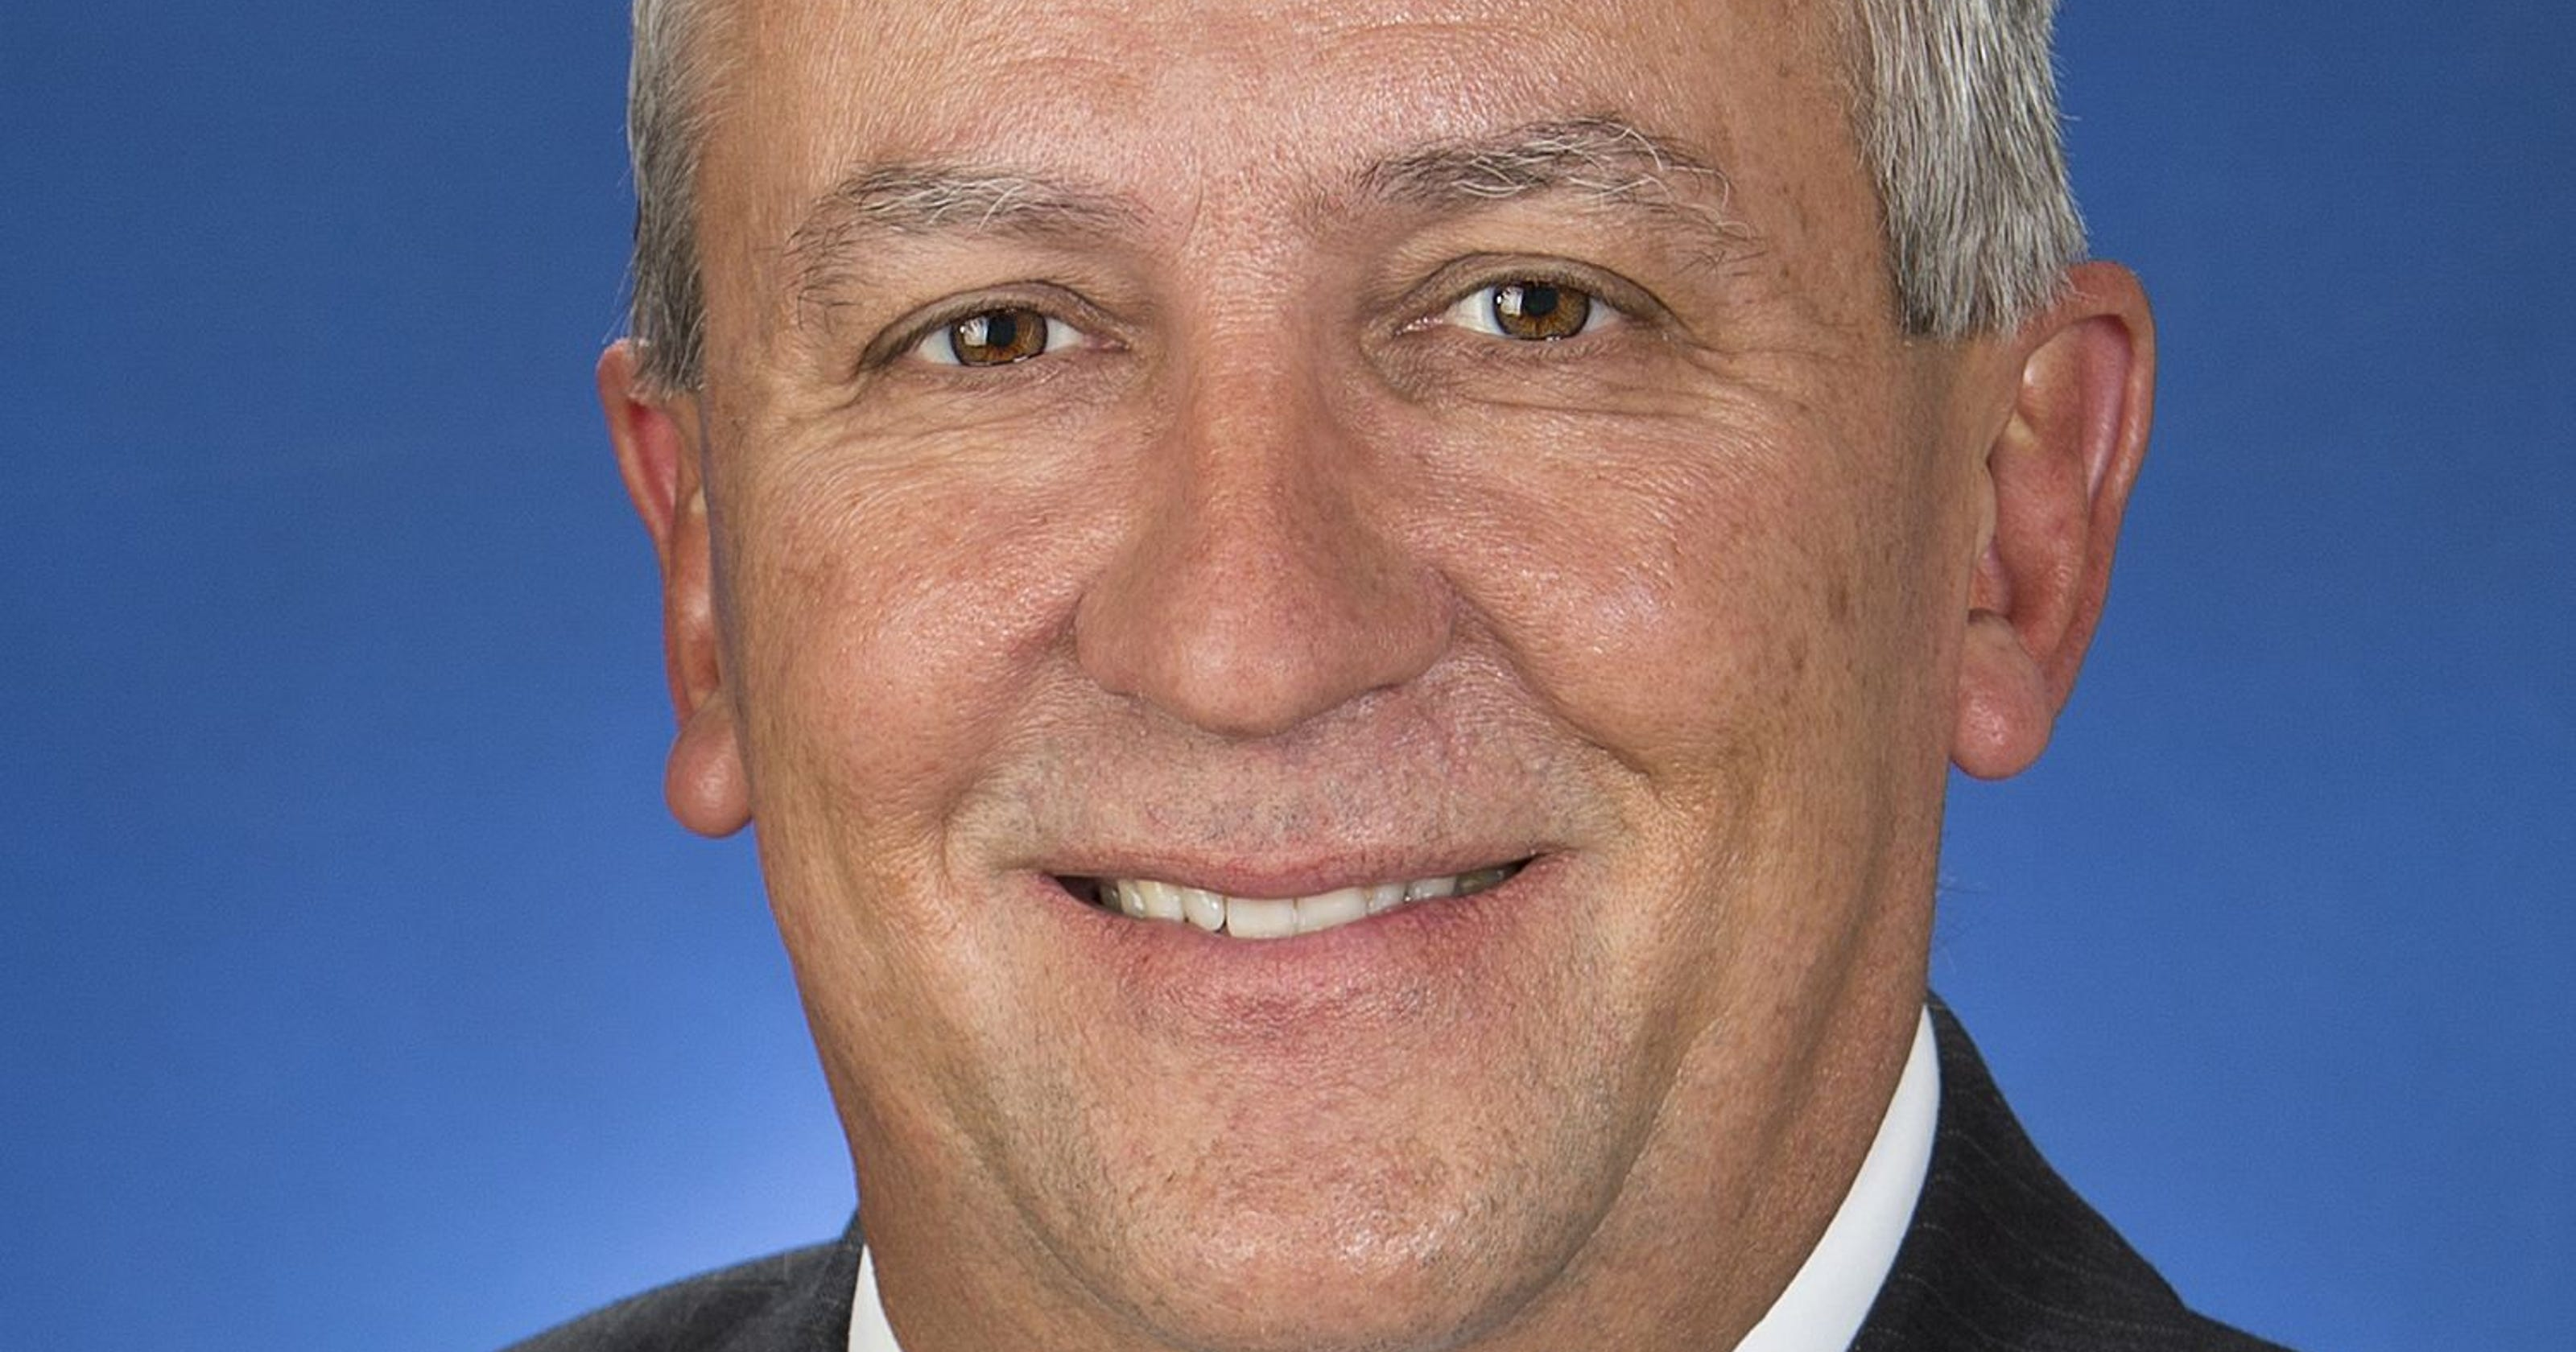 Child porn found on phone of Pennsylvania state Sen. Mike Folmer, prosecutor says